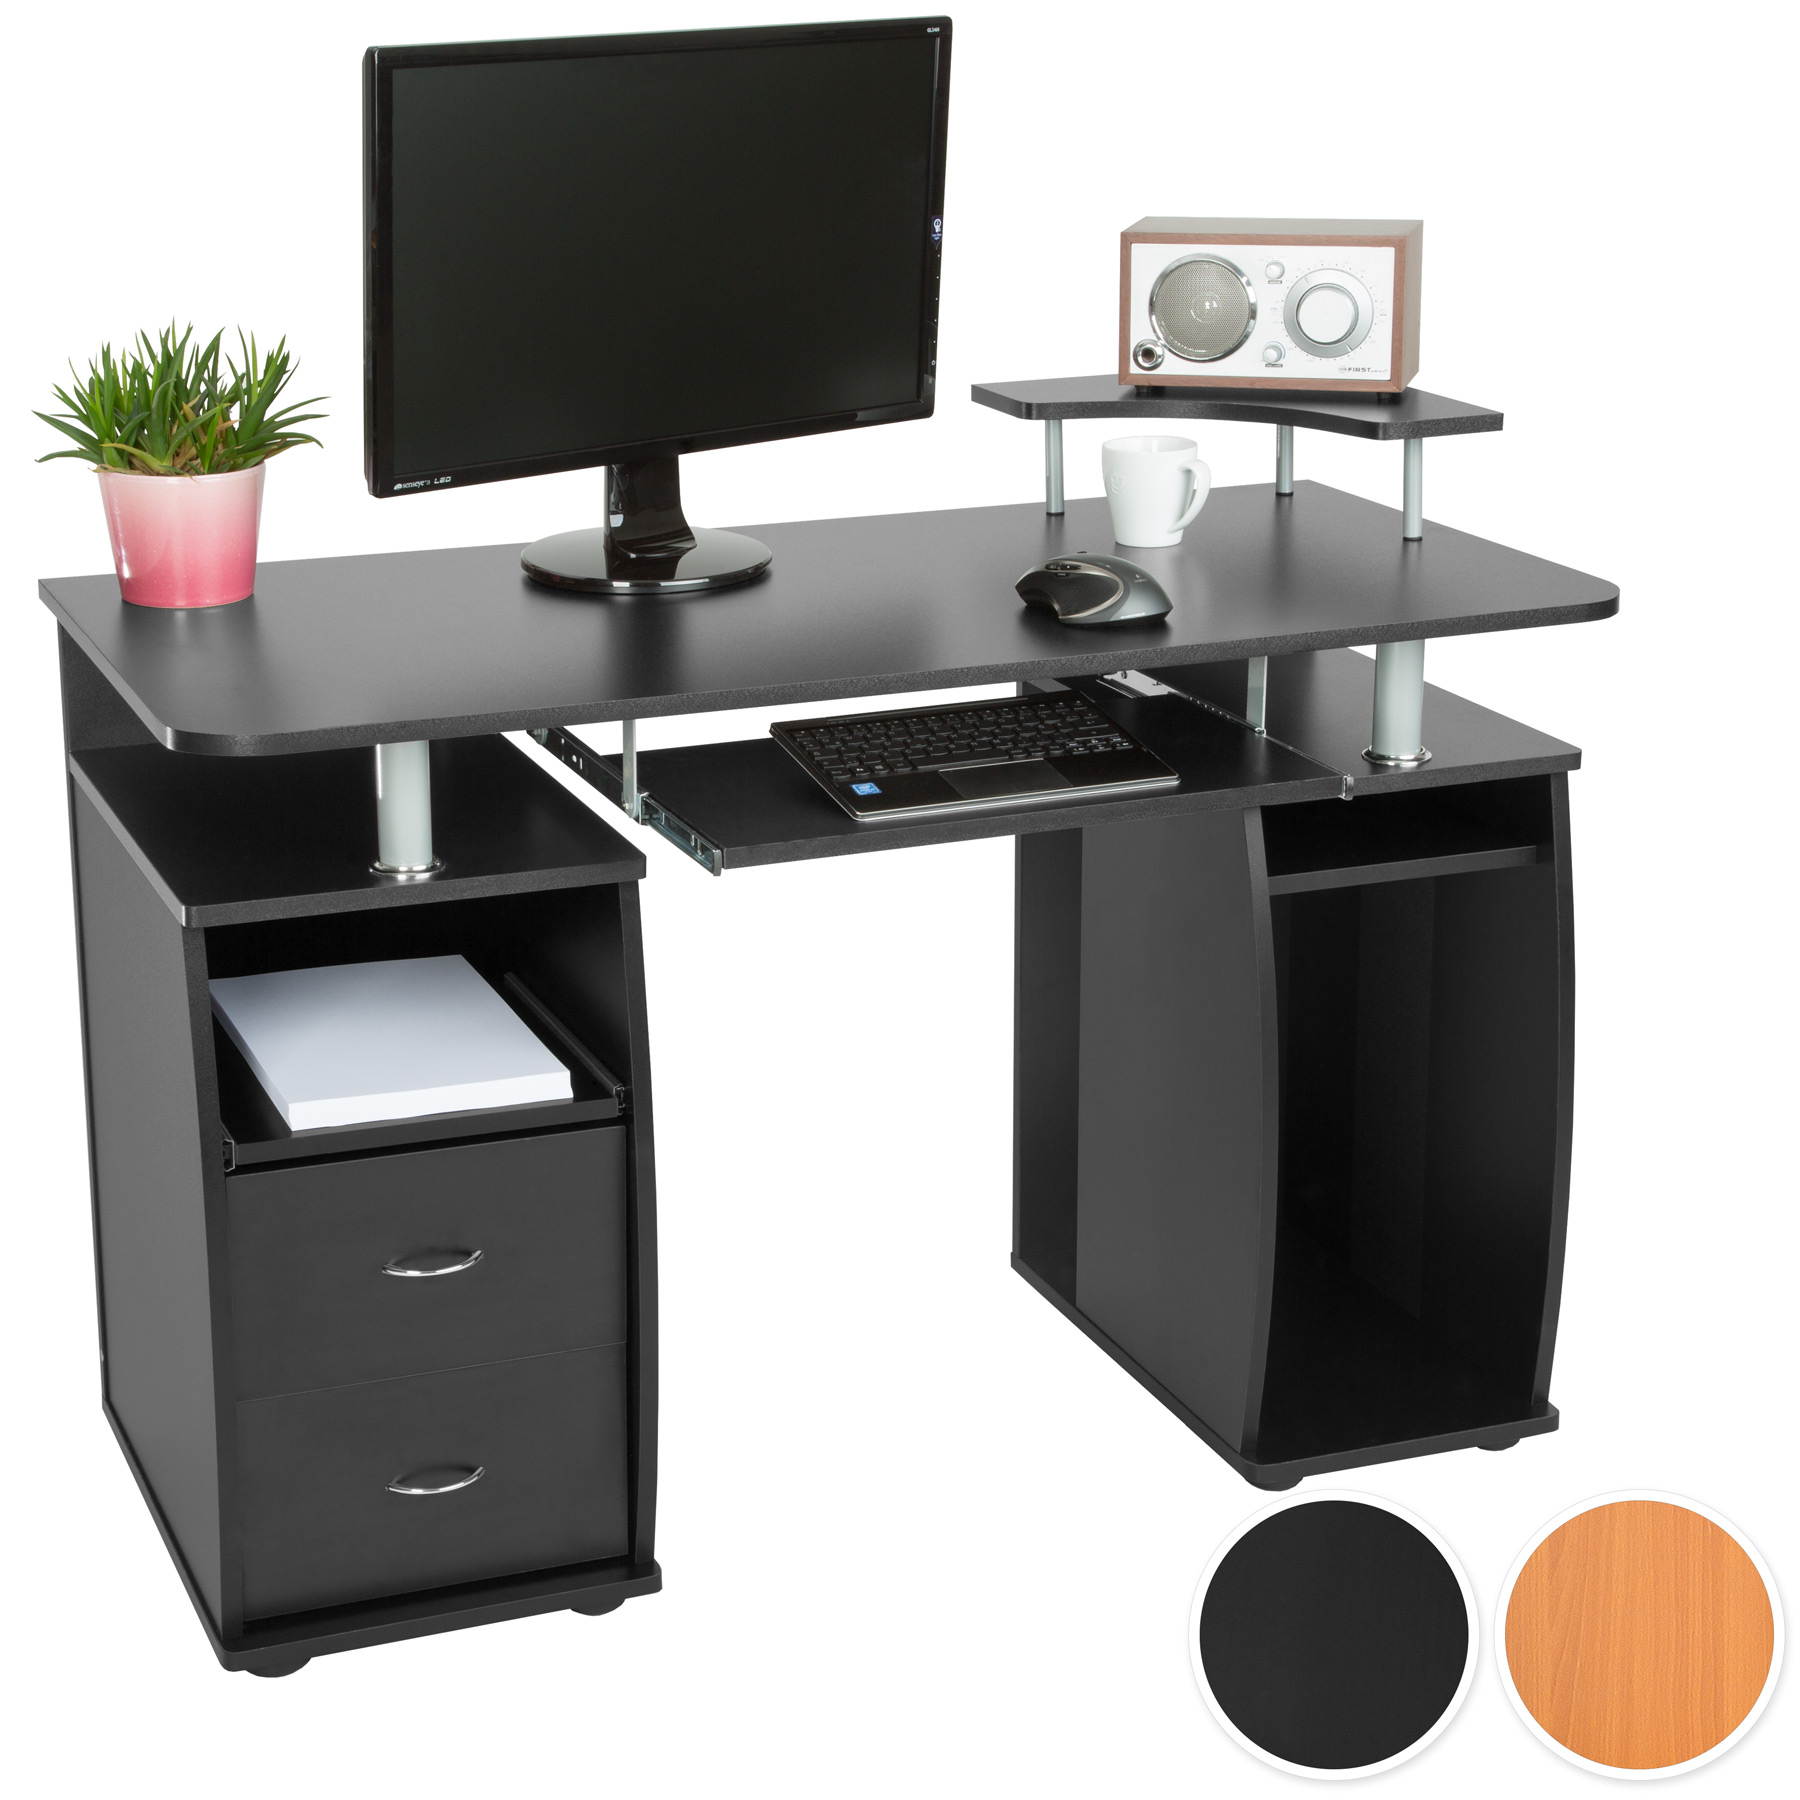 computertisch pc tisch arbeitstisch mit schubladen schreibtisch b rom bel ebay. Black Bedroom Furniture Sets. Home Design Ideas